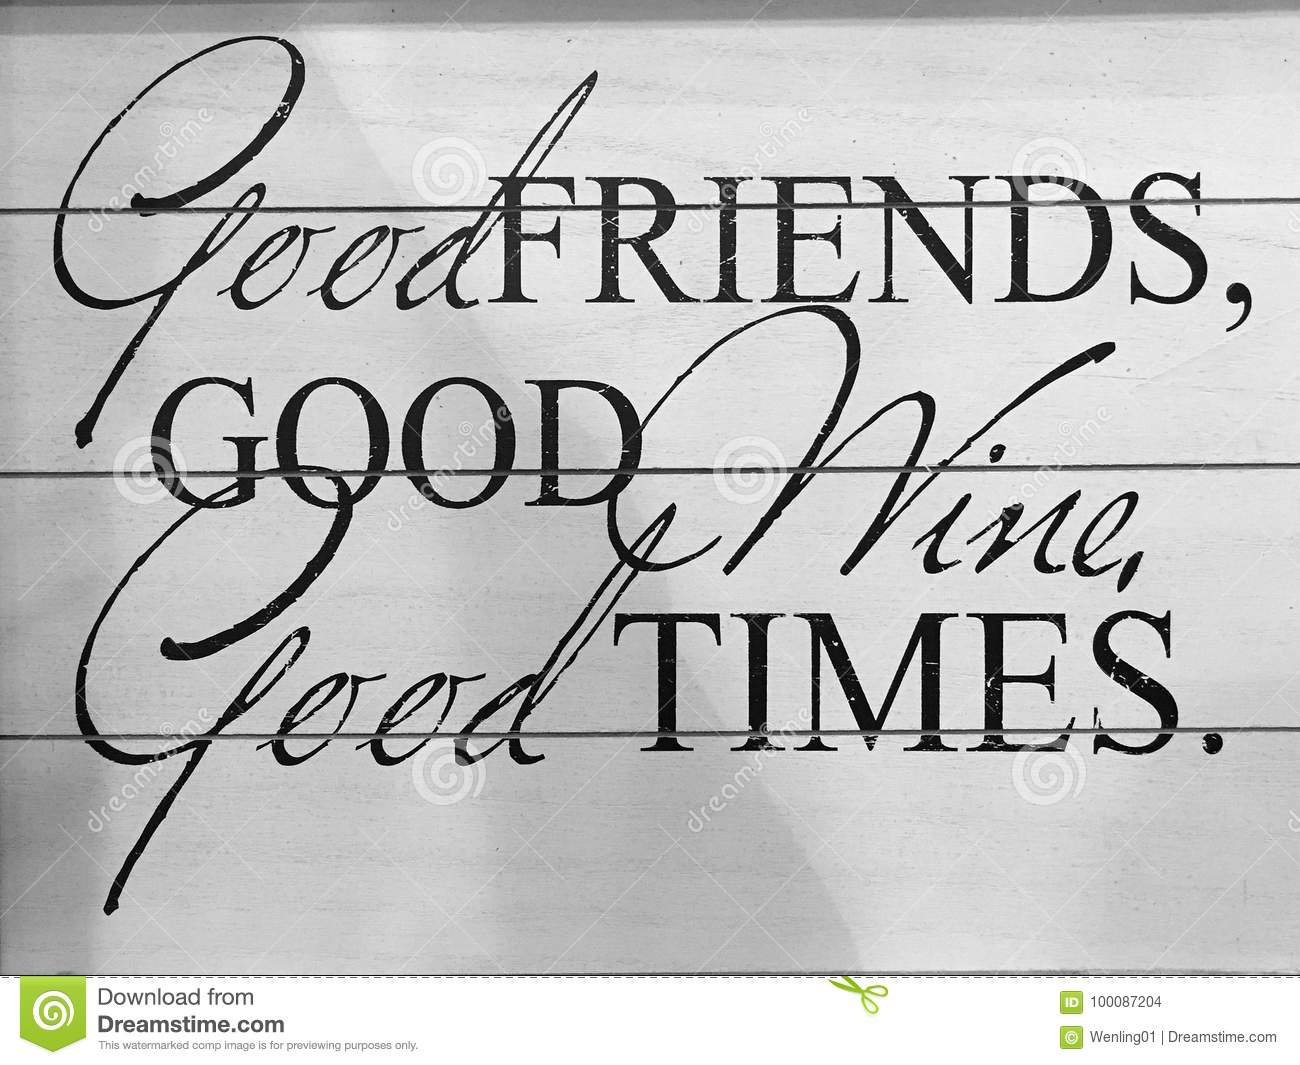 Useful tips about friends wine and times